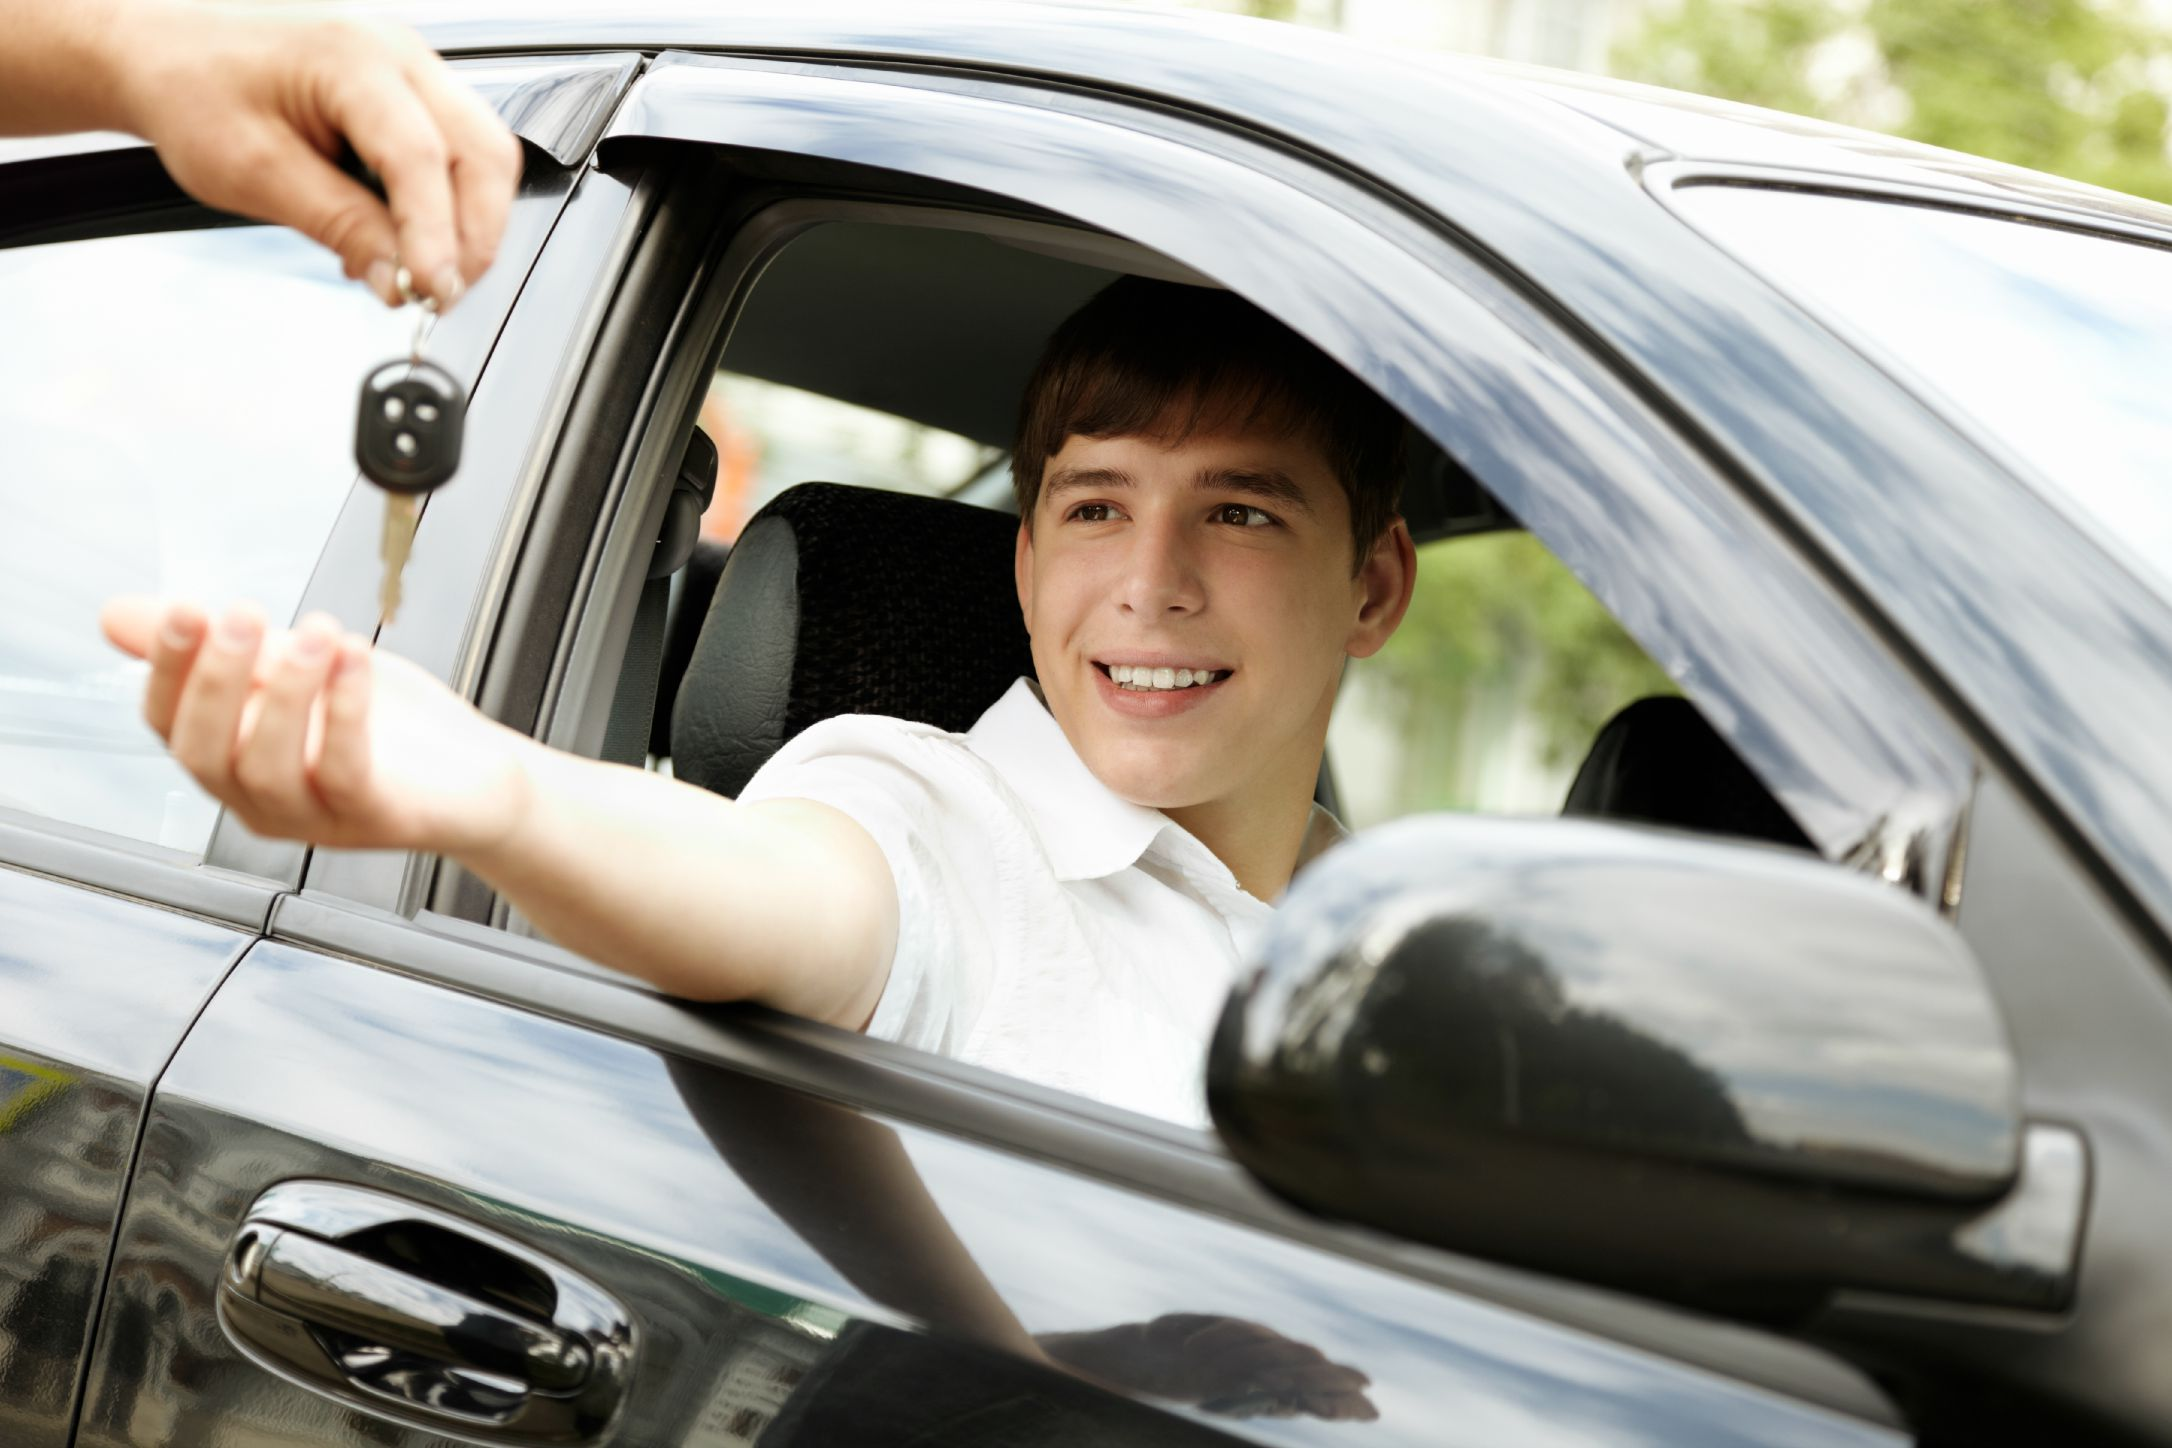 %car movements service with live tracking %trade plater